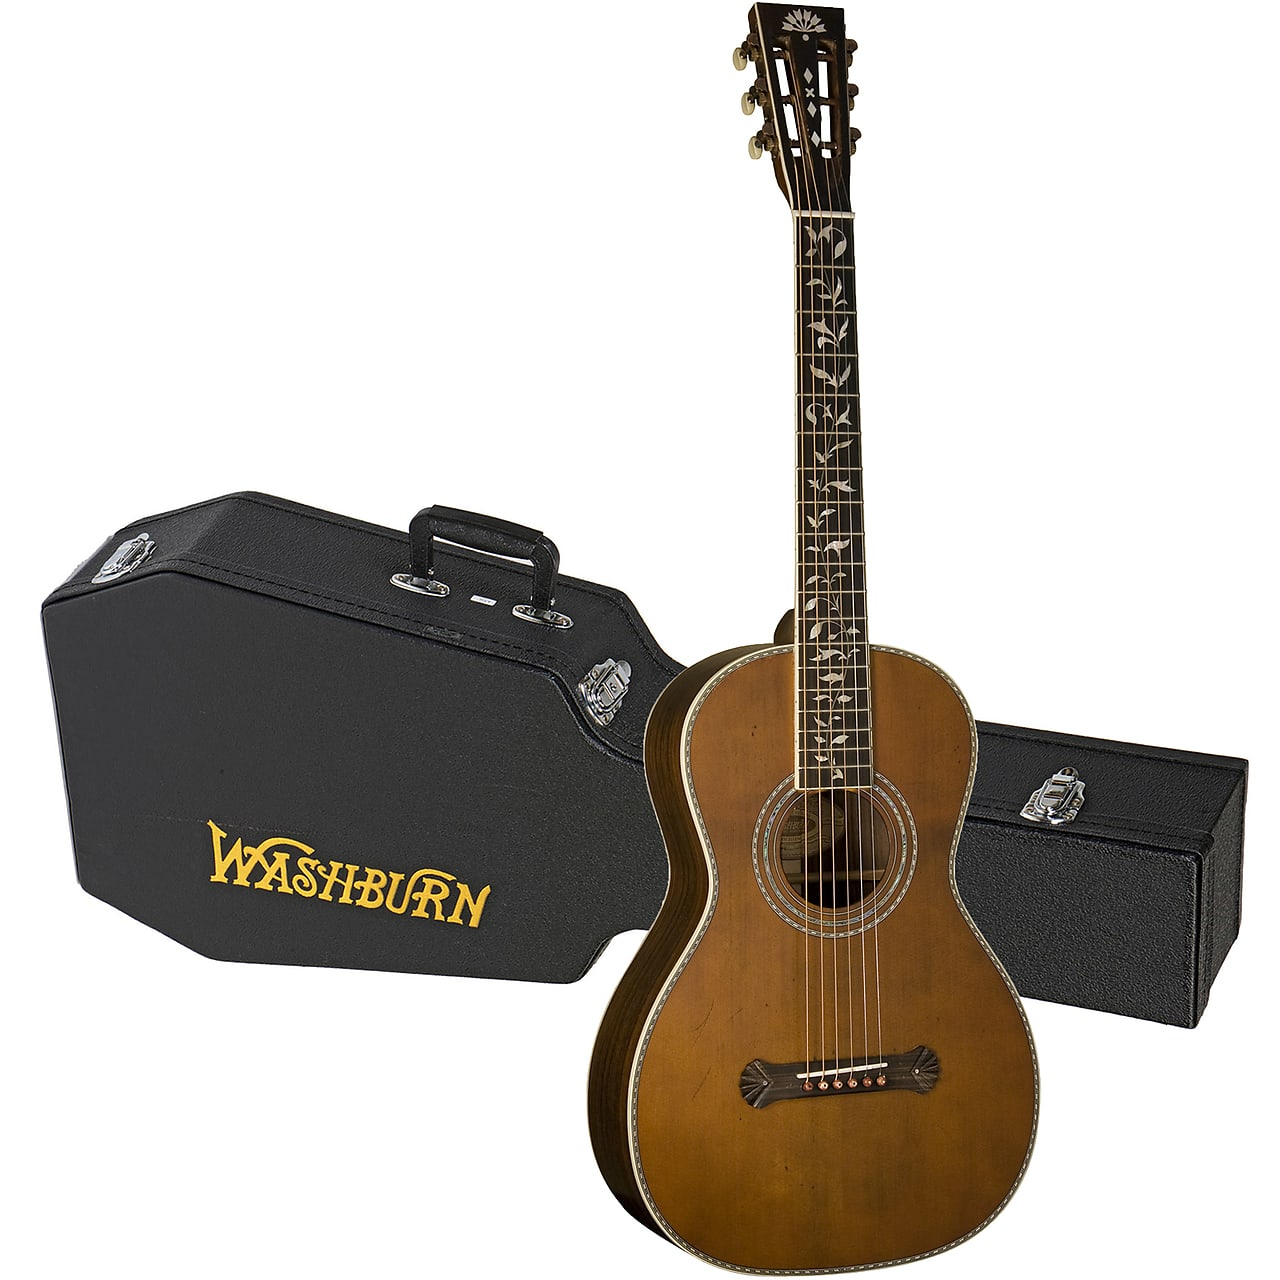 Washburn Parlor Series, All Solid Wood R320SWRK Vintage Matte w/ Case, New, Free Shipping